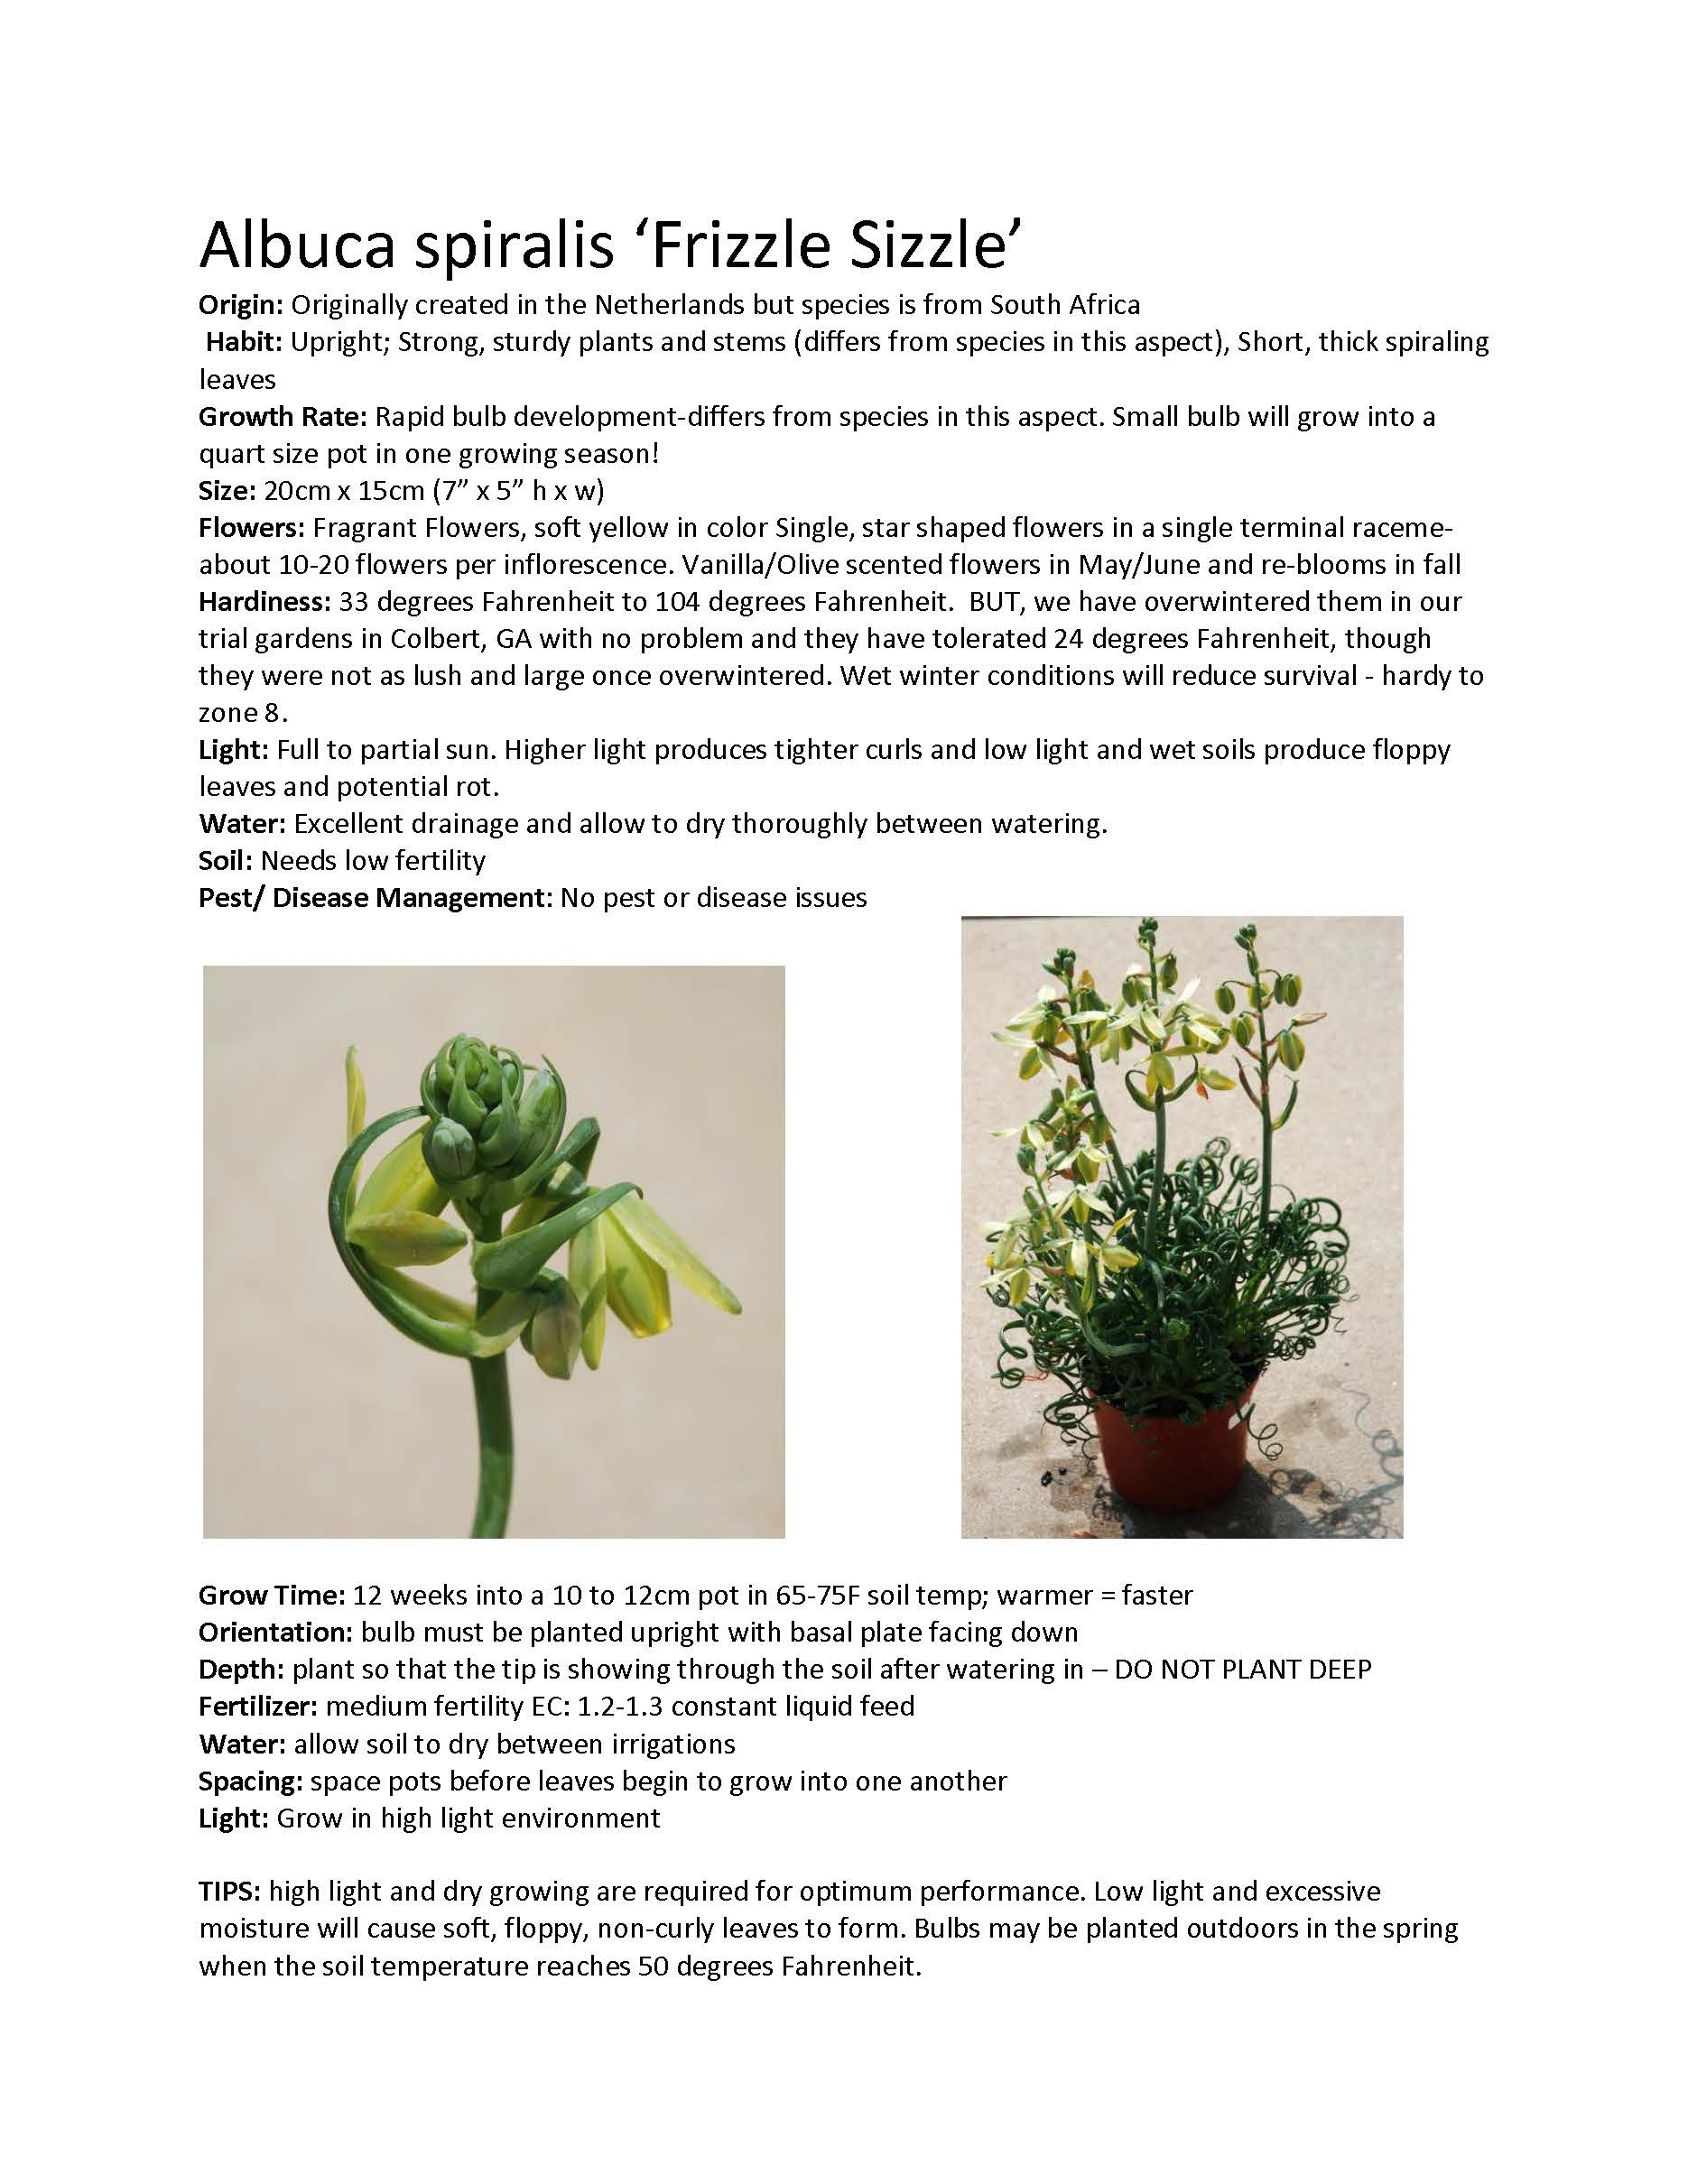 Albuca Frizzle Sizzle Plant for Sale - Buy Albuca Spiralis at Logee's!